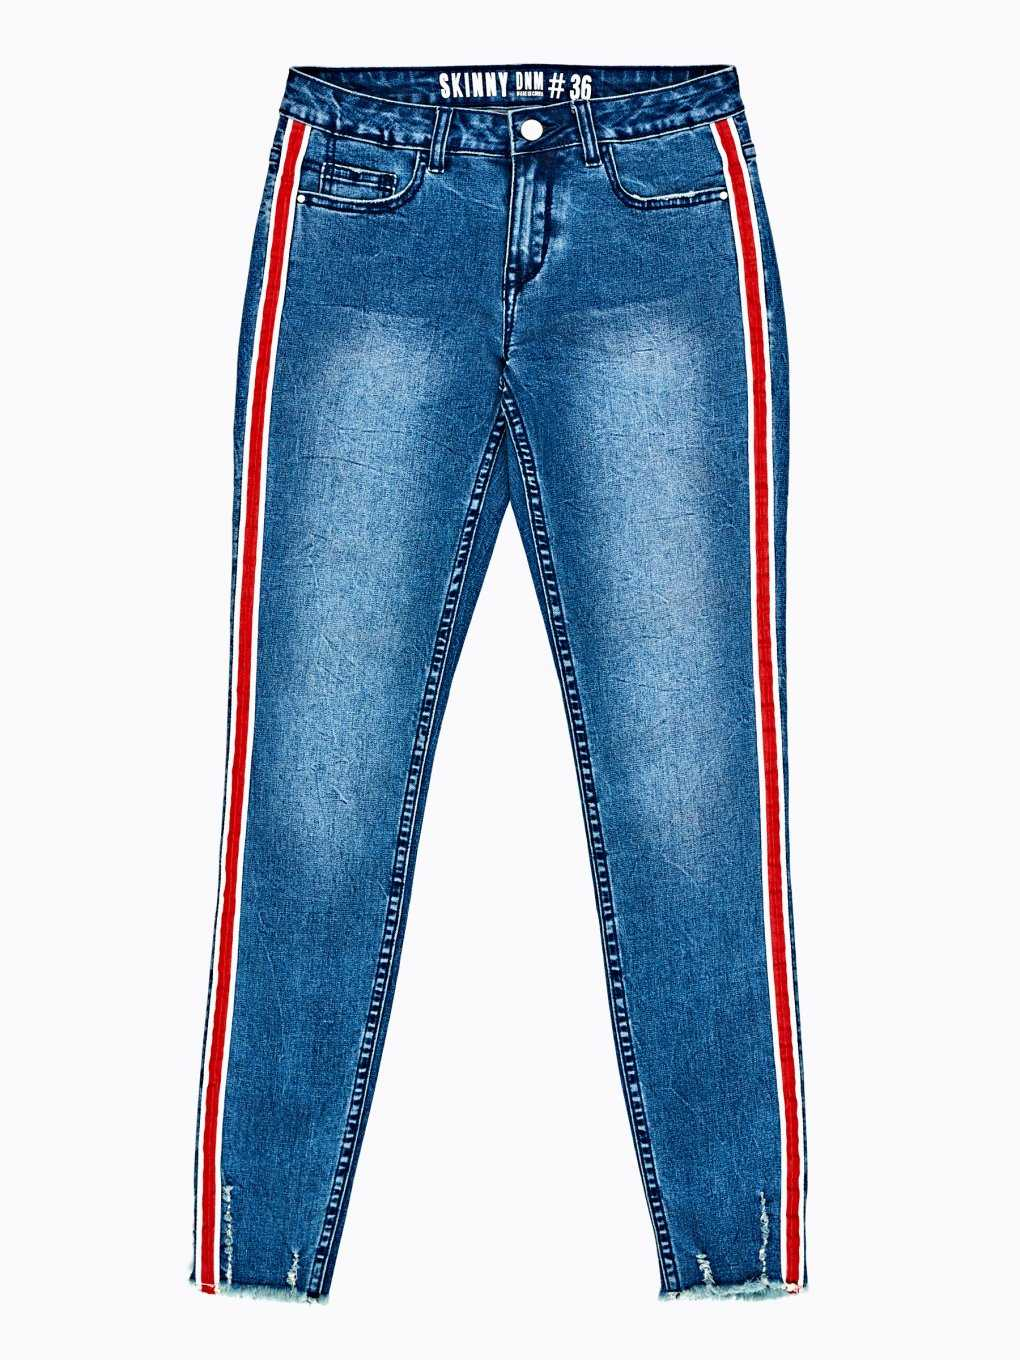 Taped skinny jeans in mid blue wash